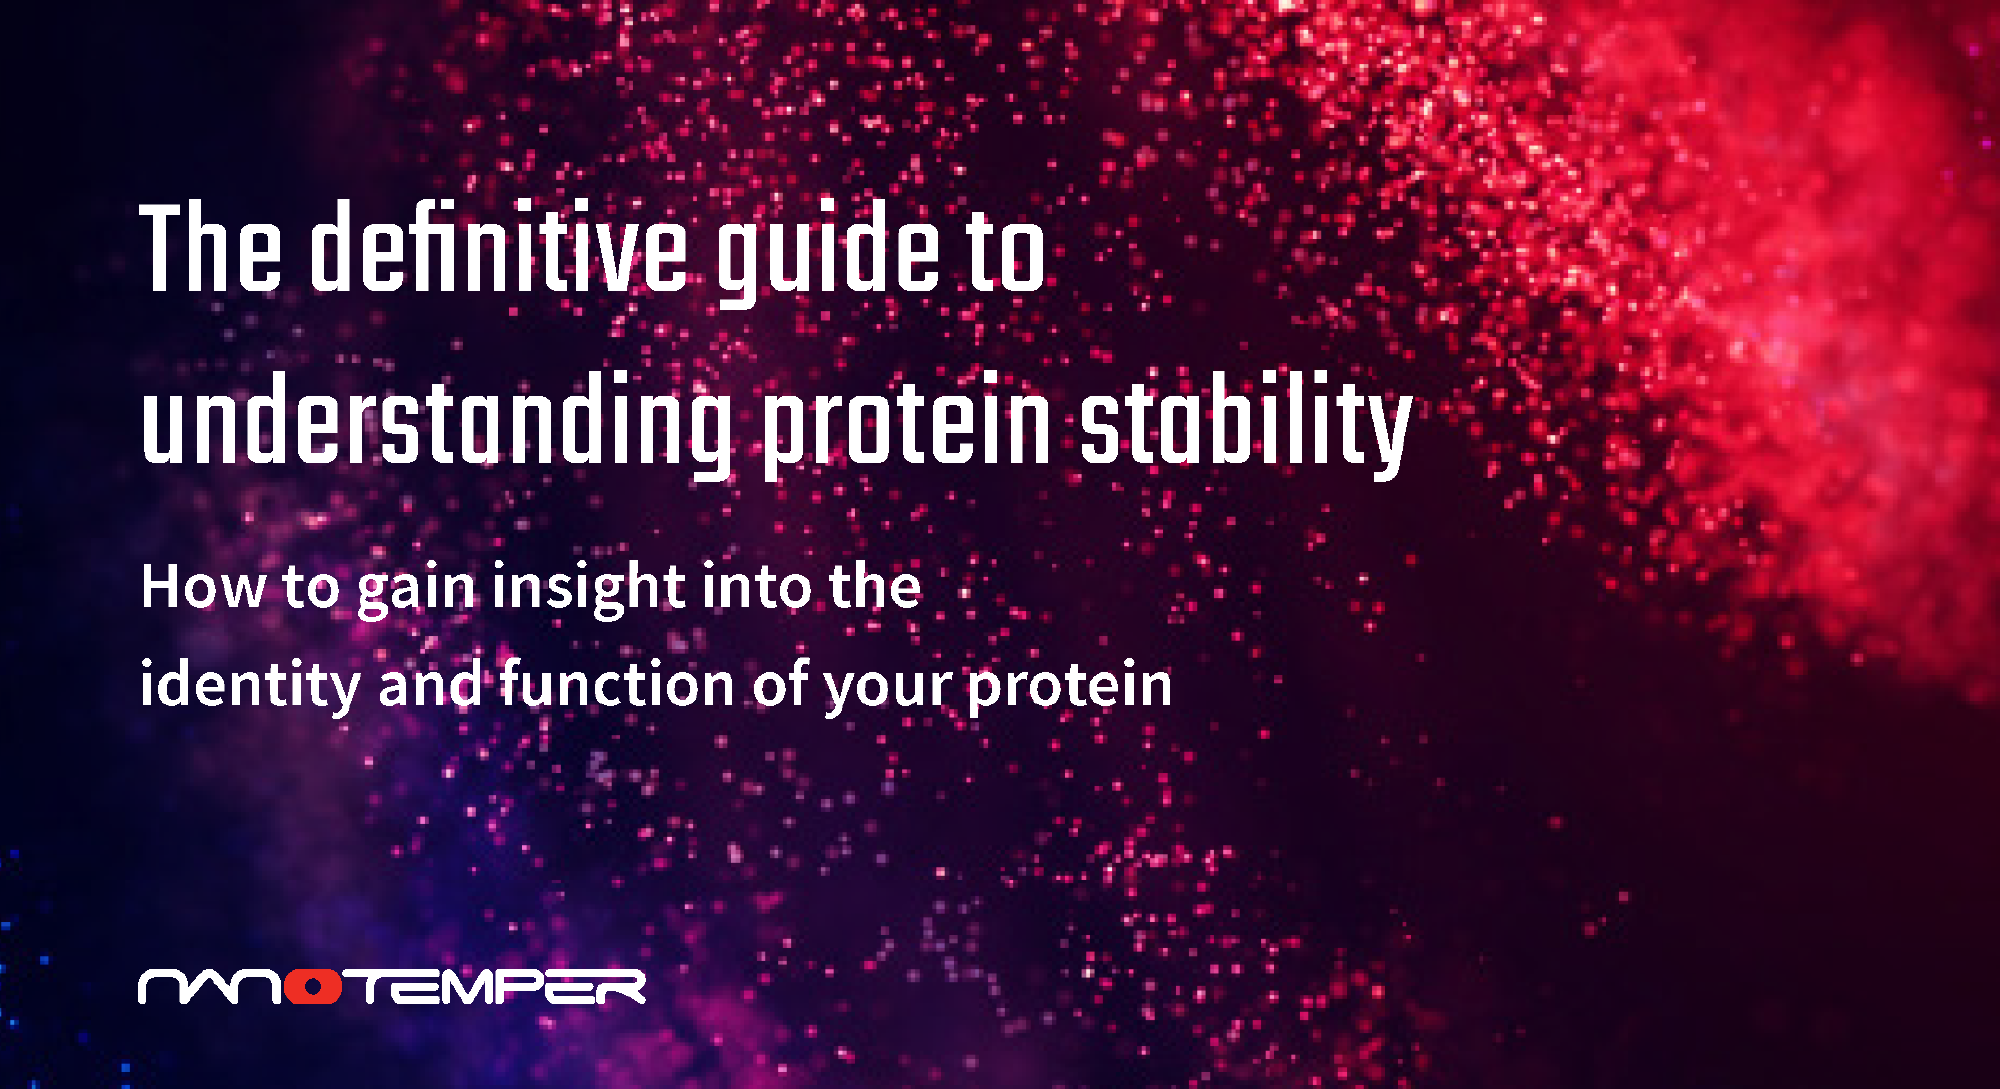 The definitive guide to understanding protein stability